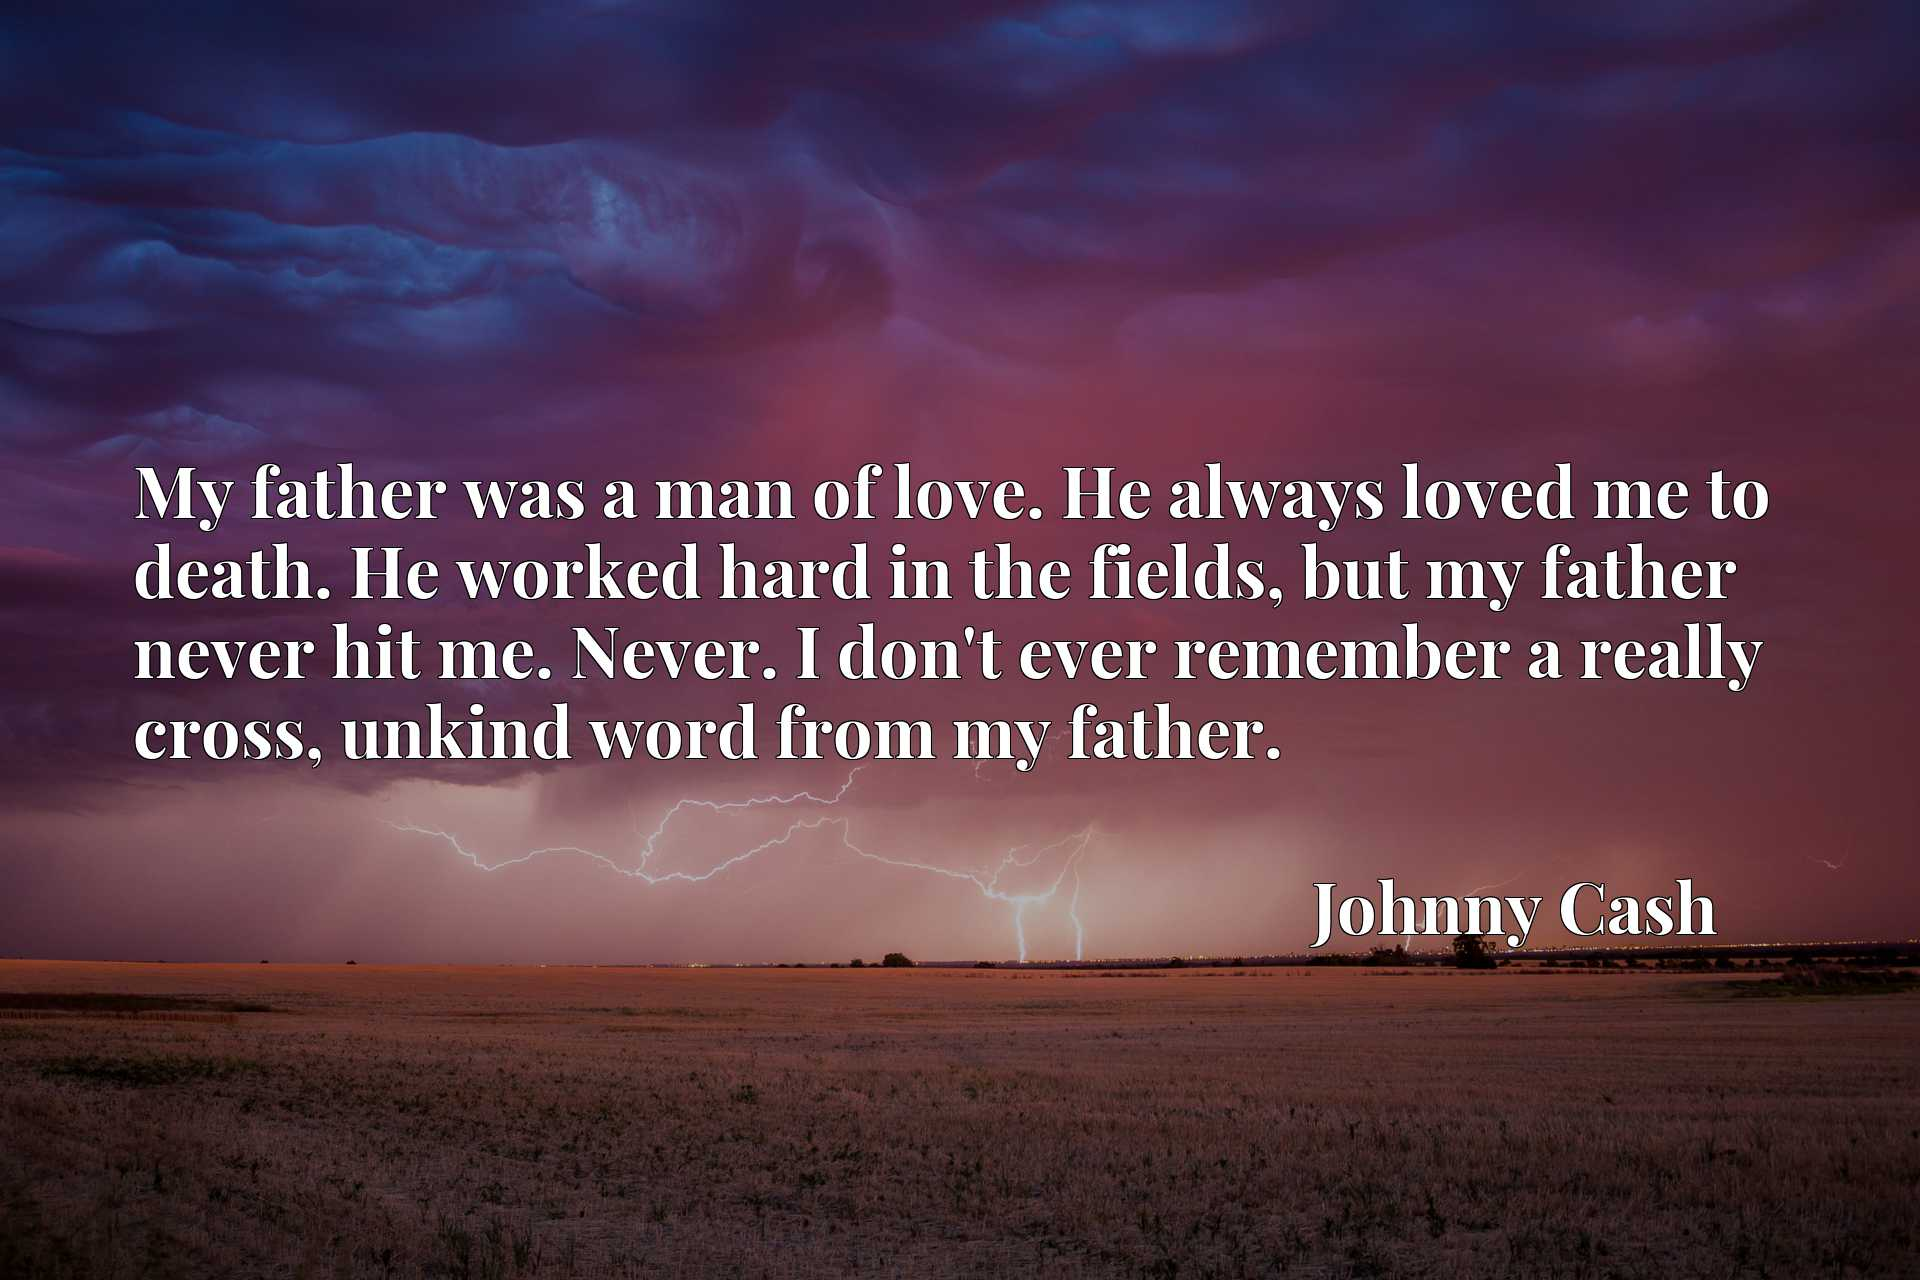 My father was a man of love. He always loved me to death. He worked hard in the fields, but my father never hit me. Never. I don't ever remember a really cross, unkind word from my father.